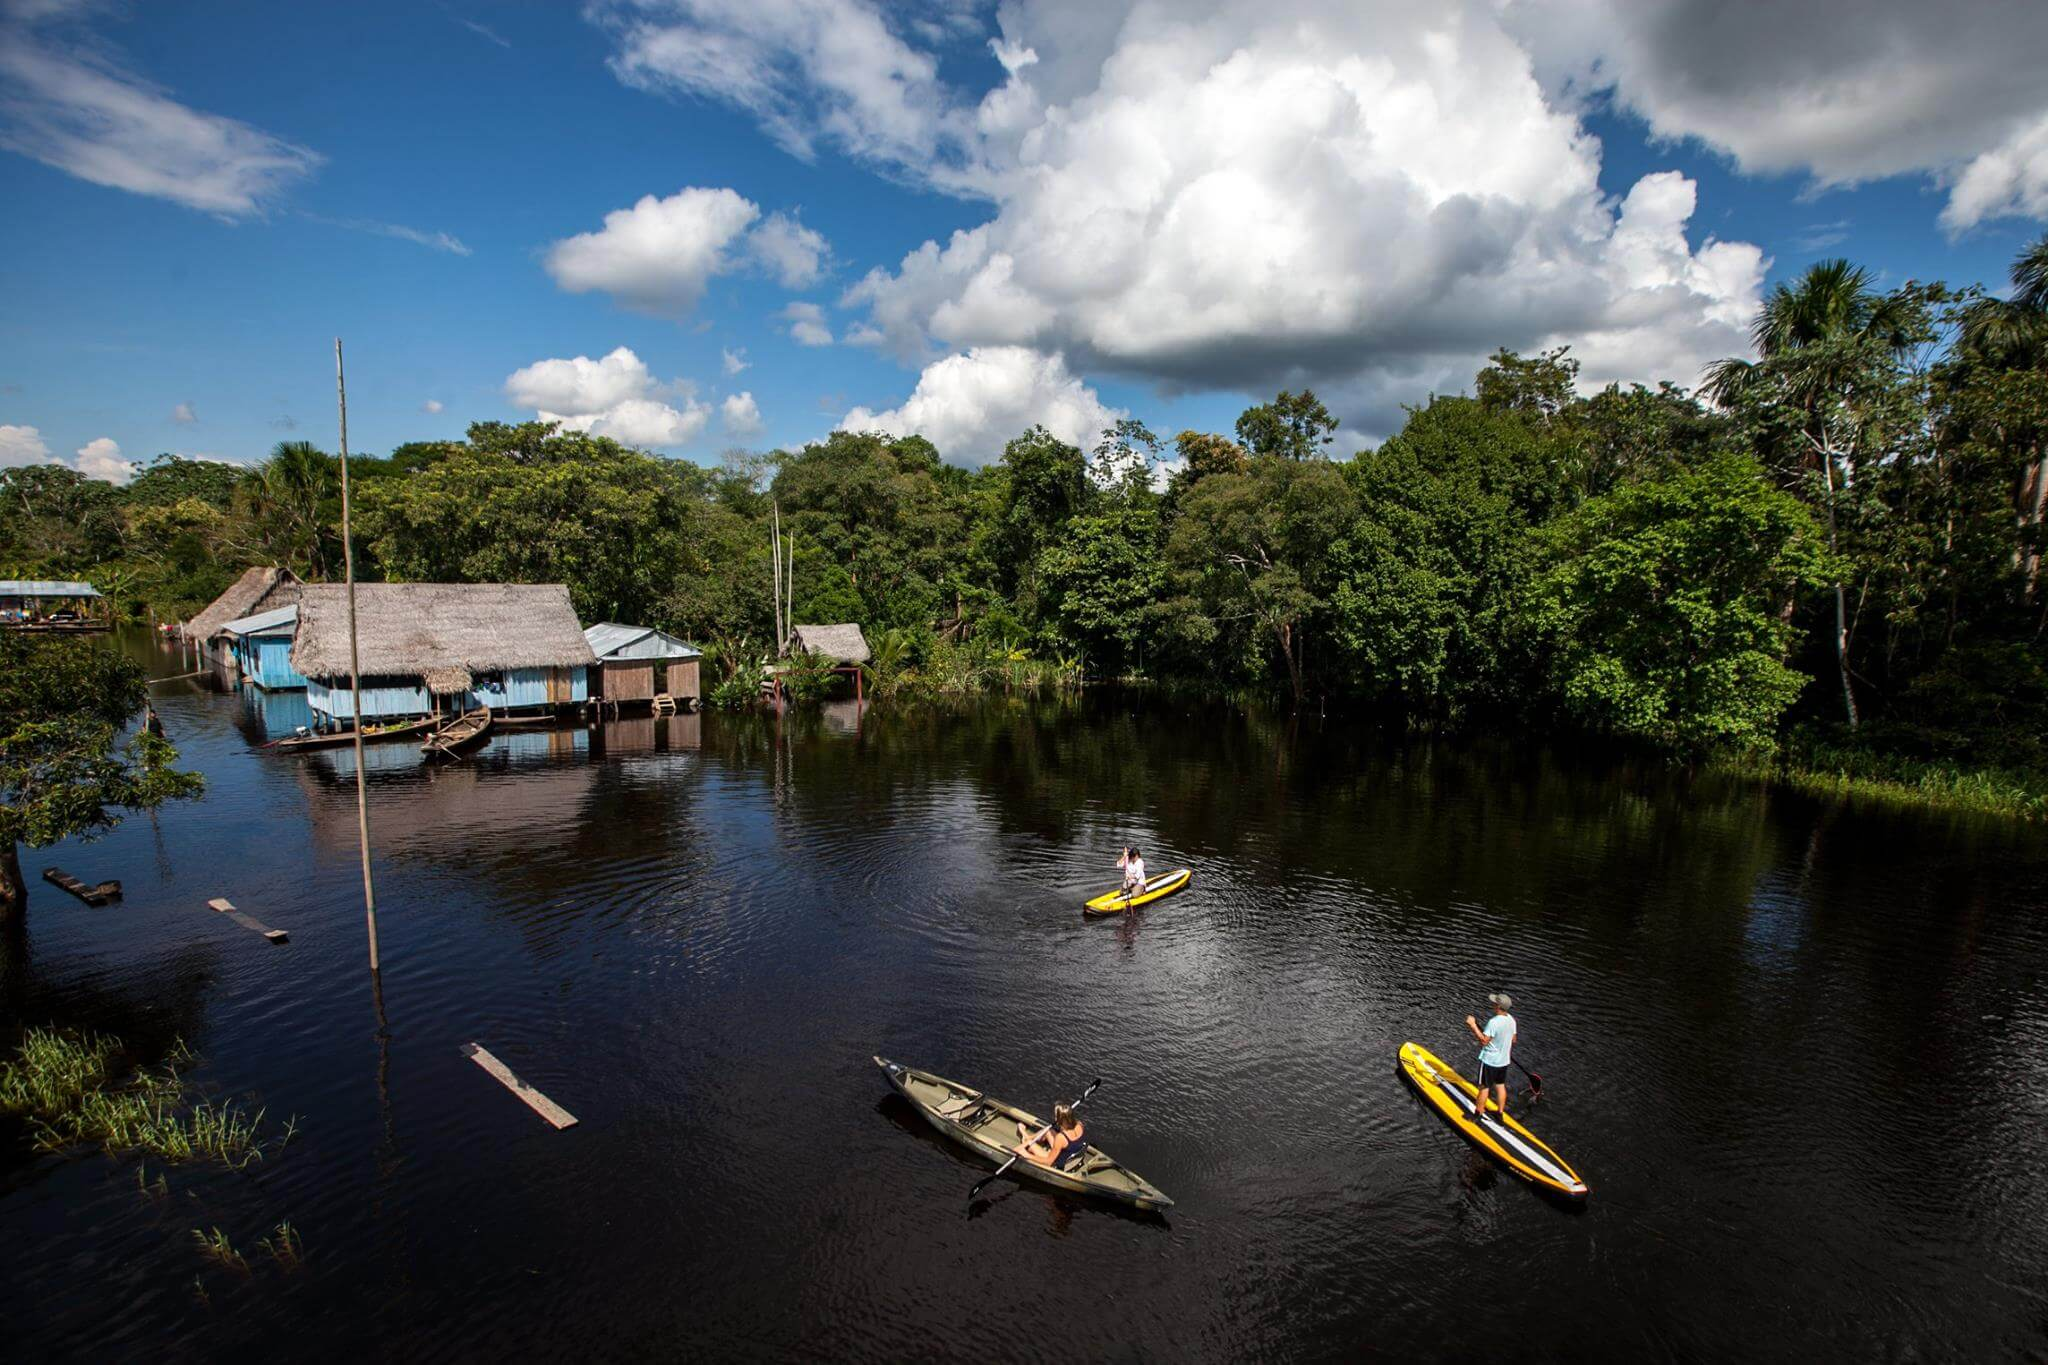 Enjoying the Amazon rainforest views from the Delfin I Amazon river cruise activities.